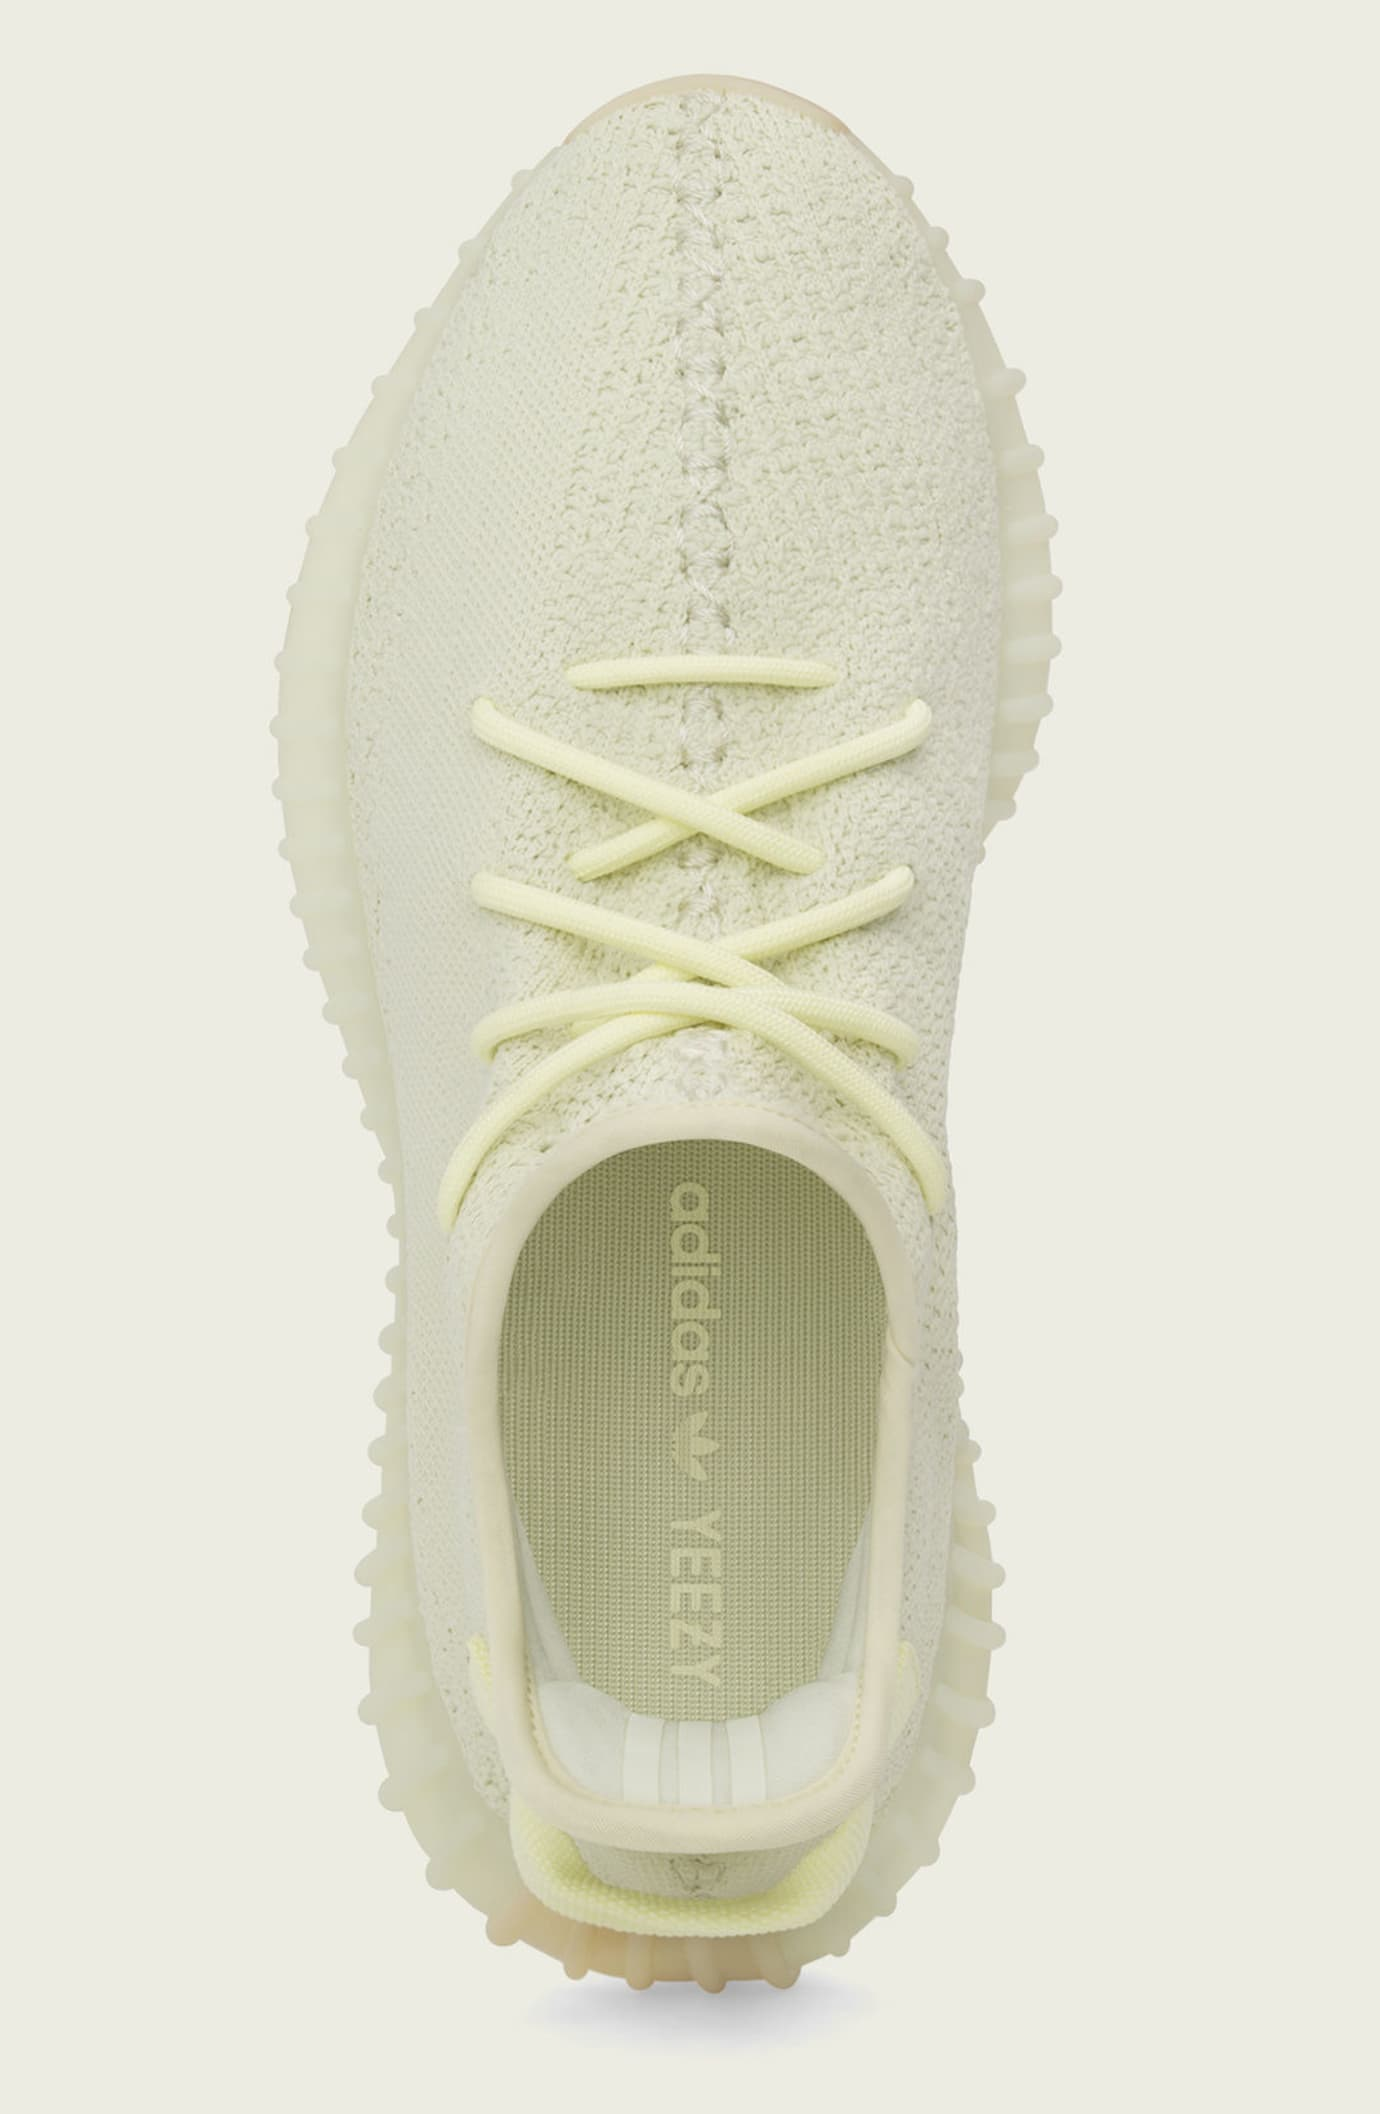 new style 8cbcd 924e9 Adidas Yeezy Boost 350 V2 'Butter' F36980 January 2018 ...